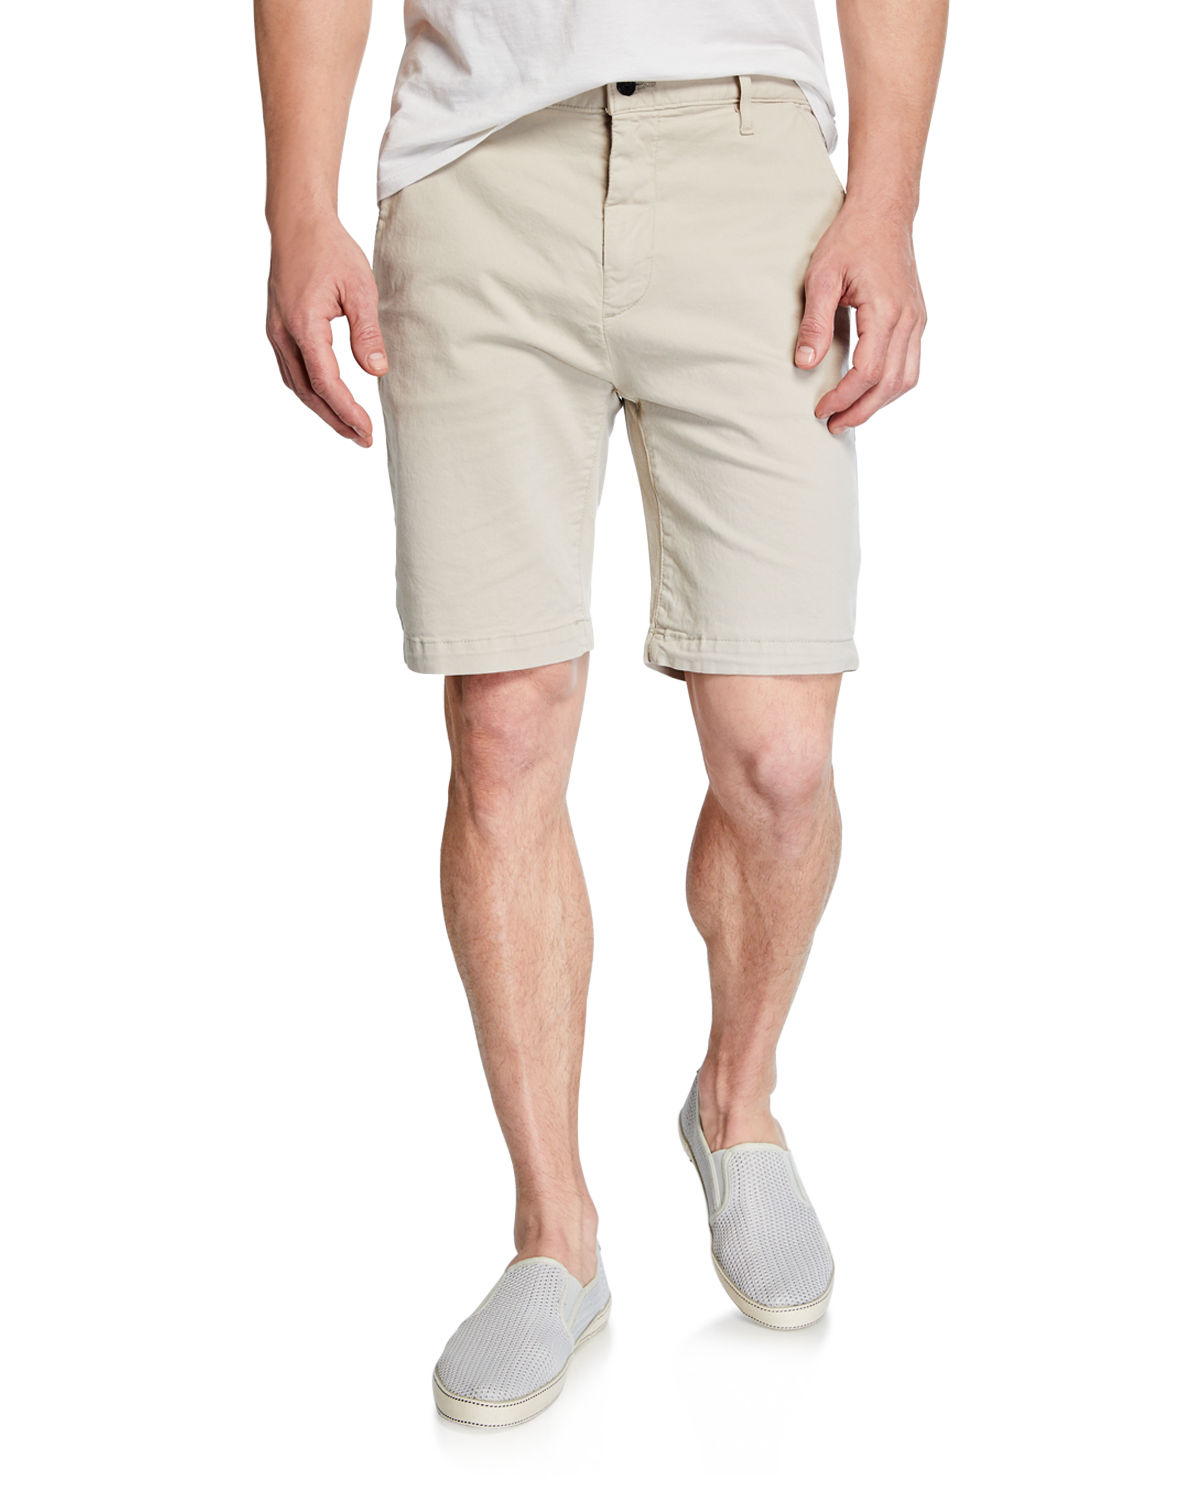 7 For All Mankind Shorts MEN'S STRETCH-CHINO SHORTS